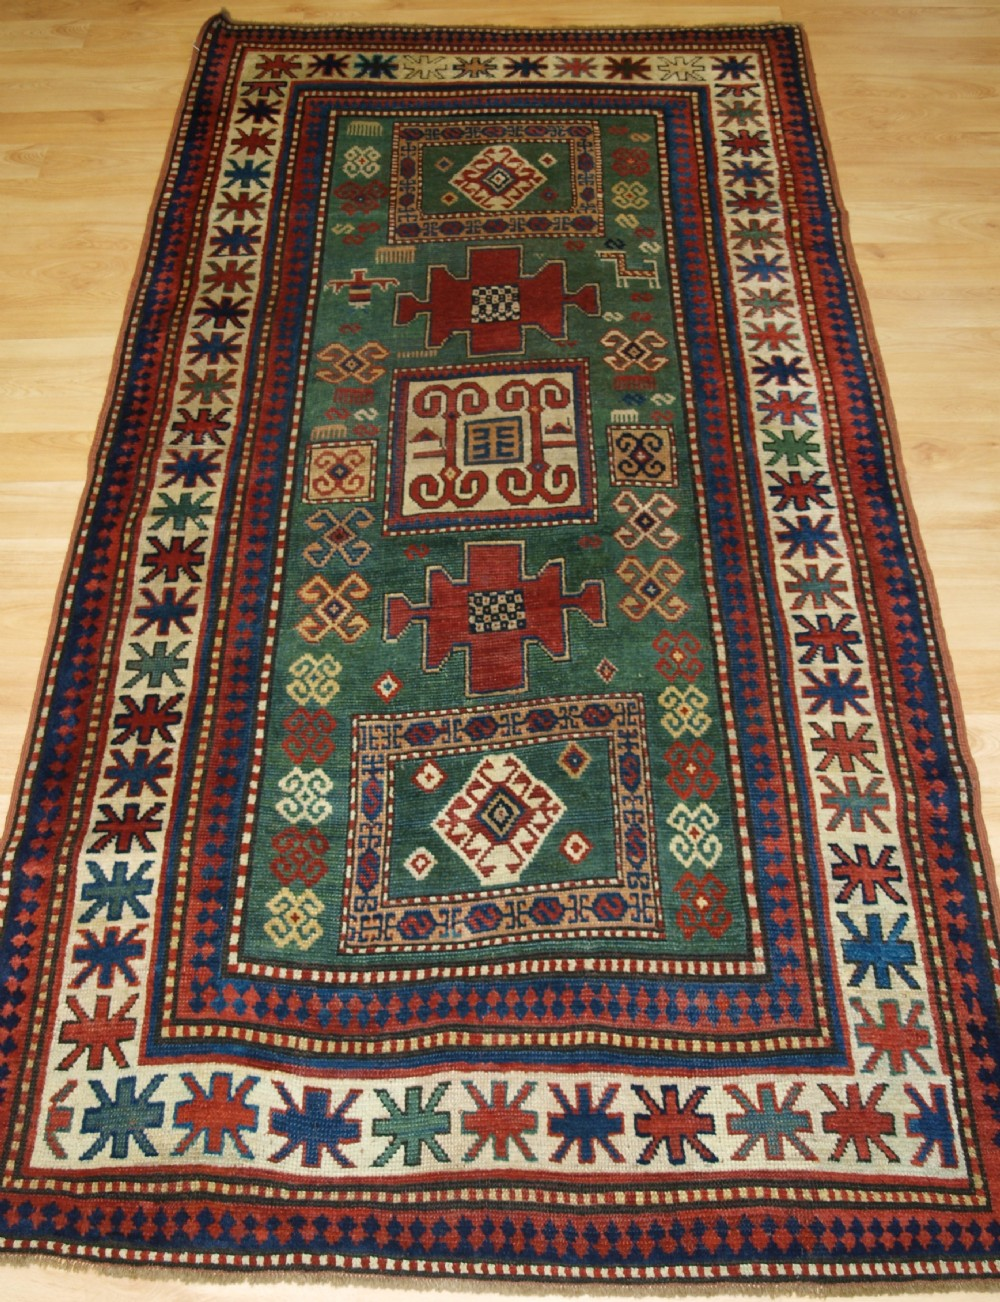 antique caucasian karachov kazak of rare green ground format 4th quarter 19th century